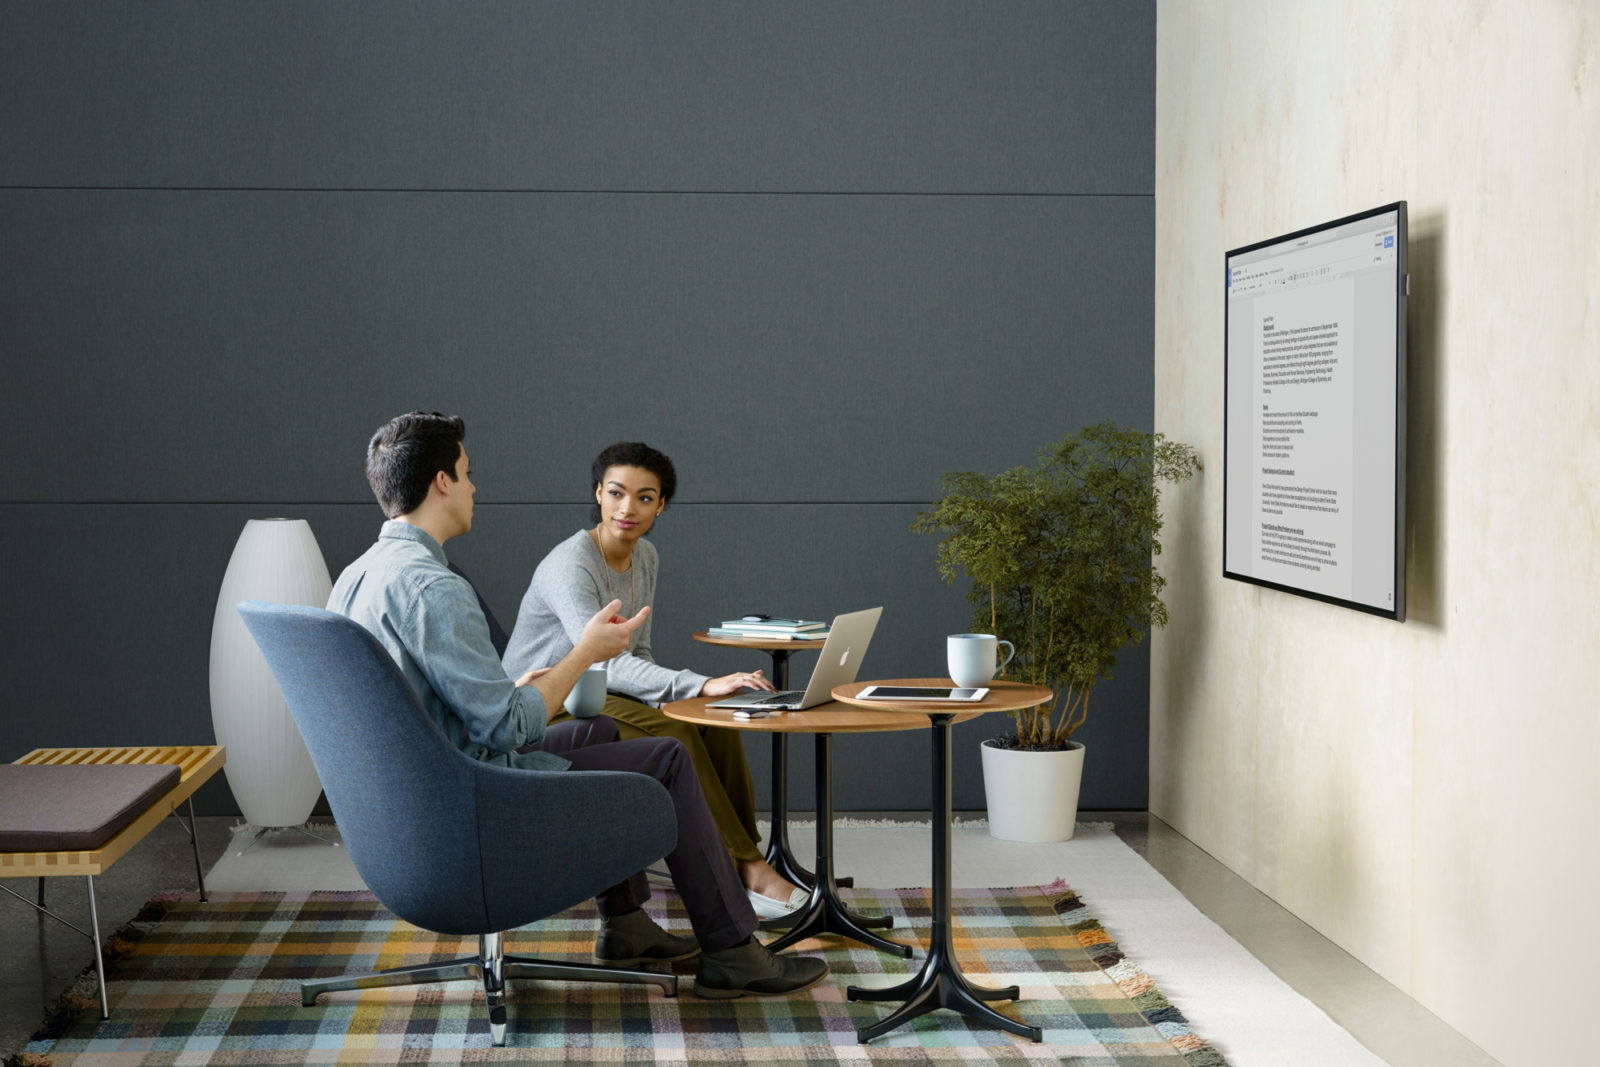 Stock photo of man and woman having a meeting using Herman Miller office furniture